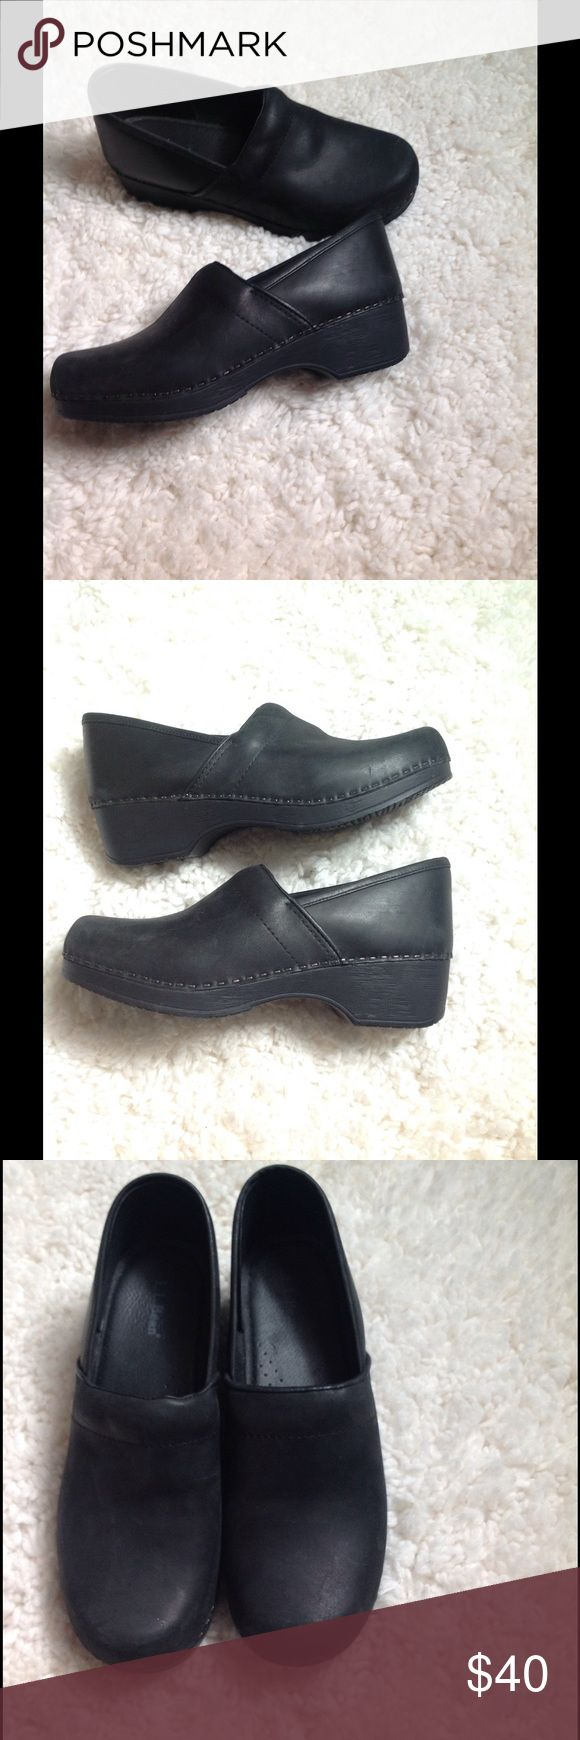 Slip resistant clogs🔺Run SMALL Like new! Great for healthcare workers! These say they are a size 40, however, they run small!!! L.L. Bean Shoes Mules & Clogs